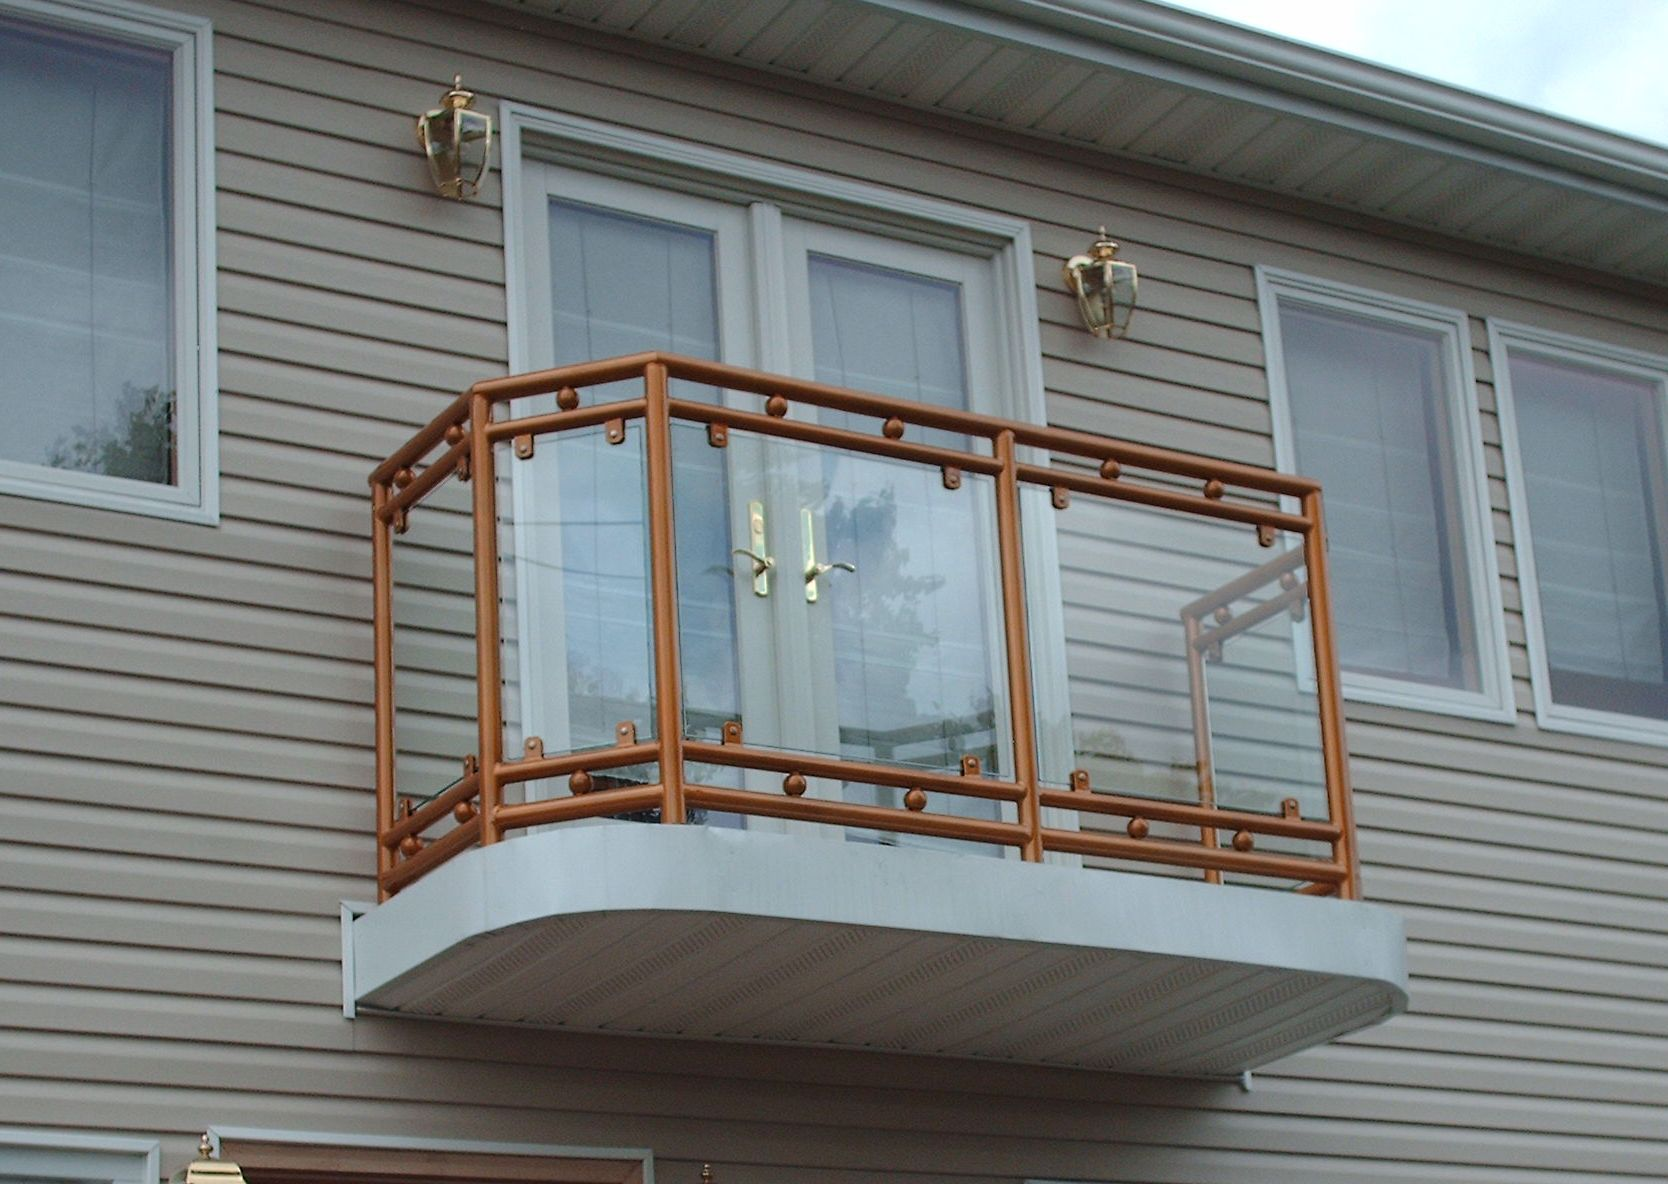 Guardian gate balcony balconies pinterest balcony for Terrace railing design